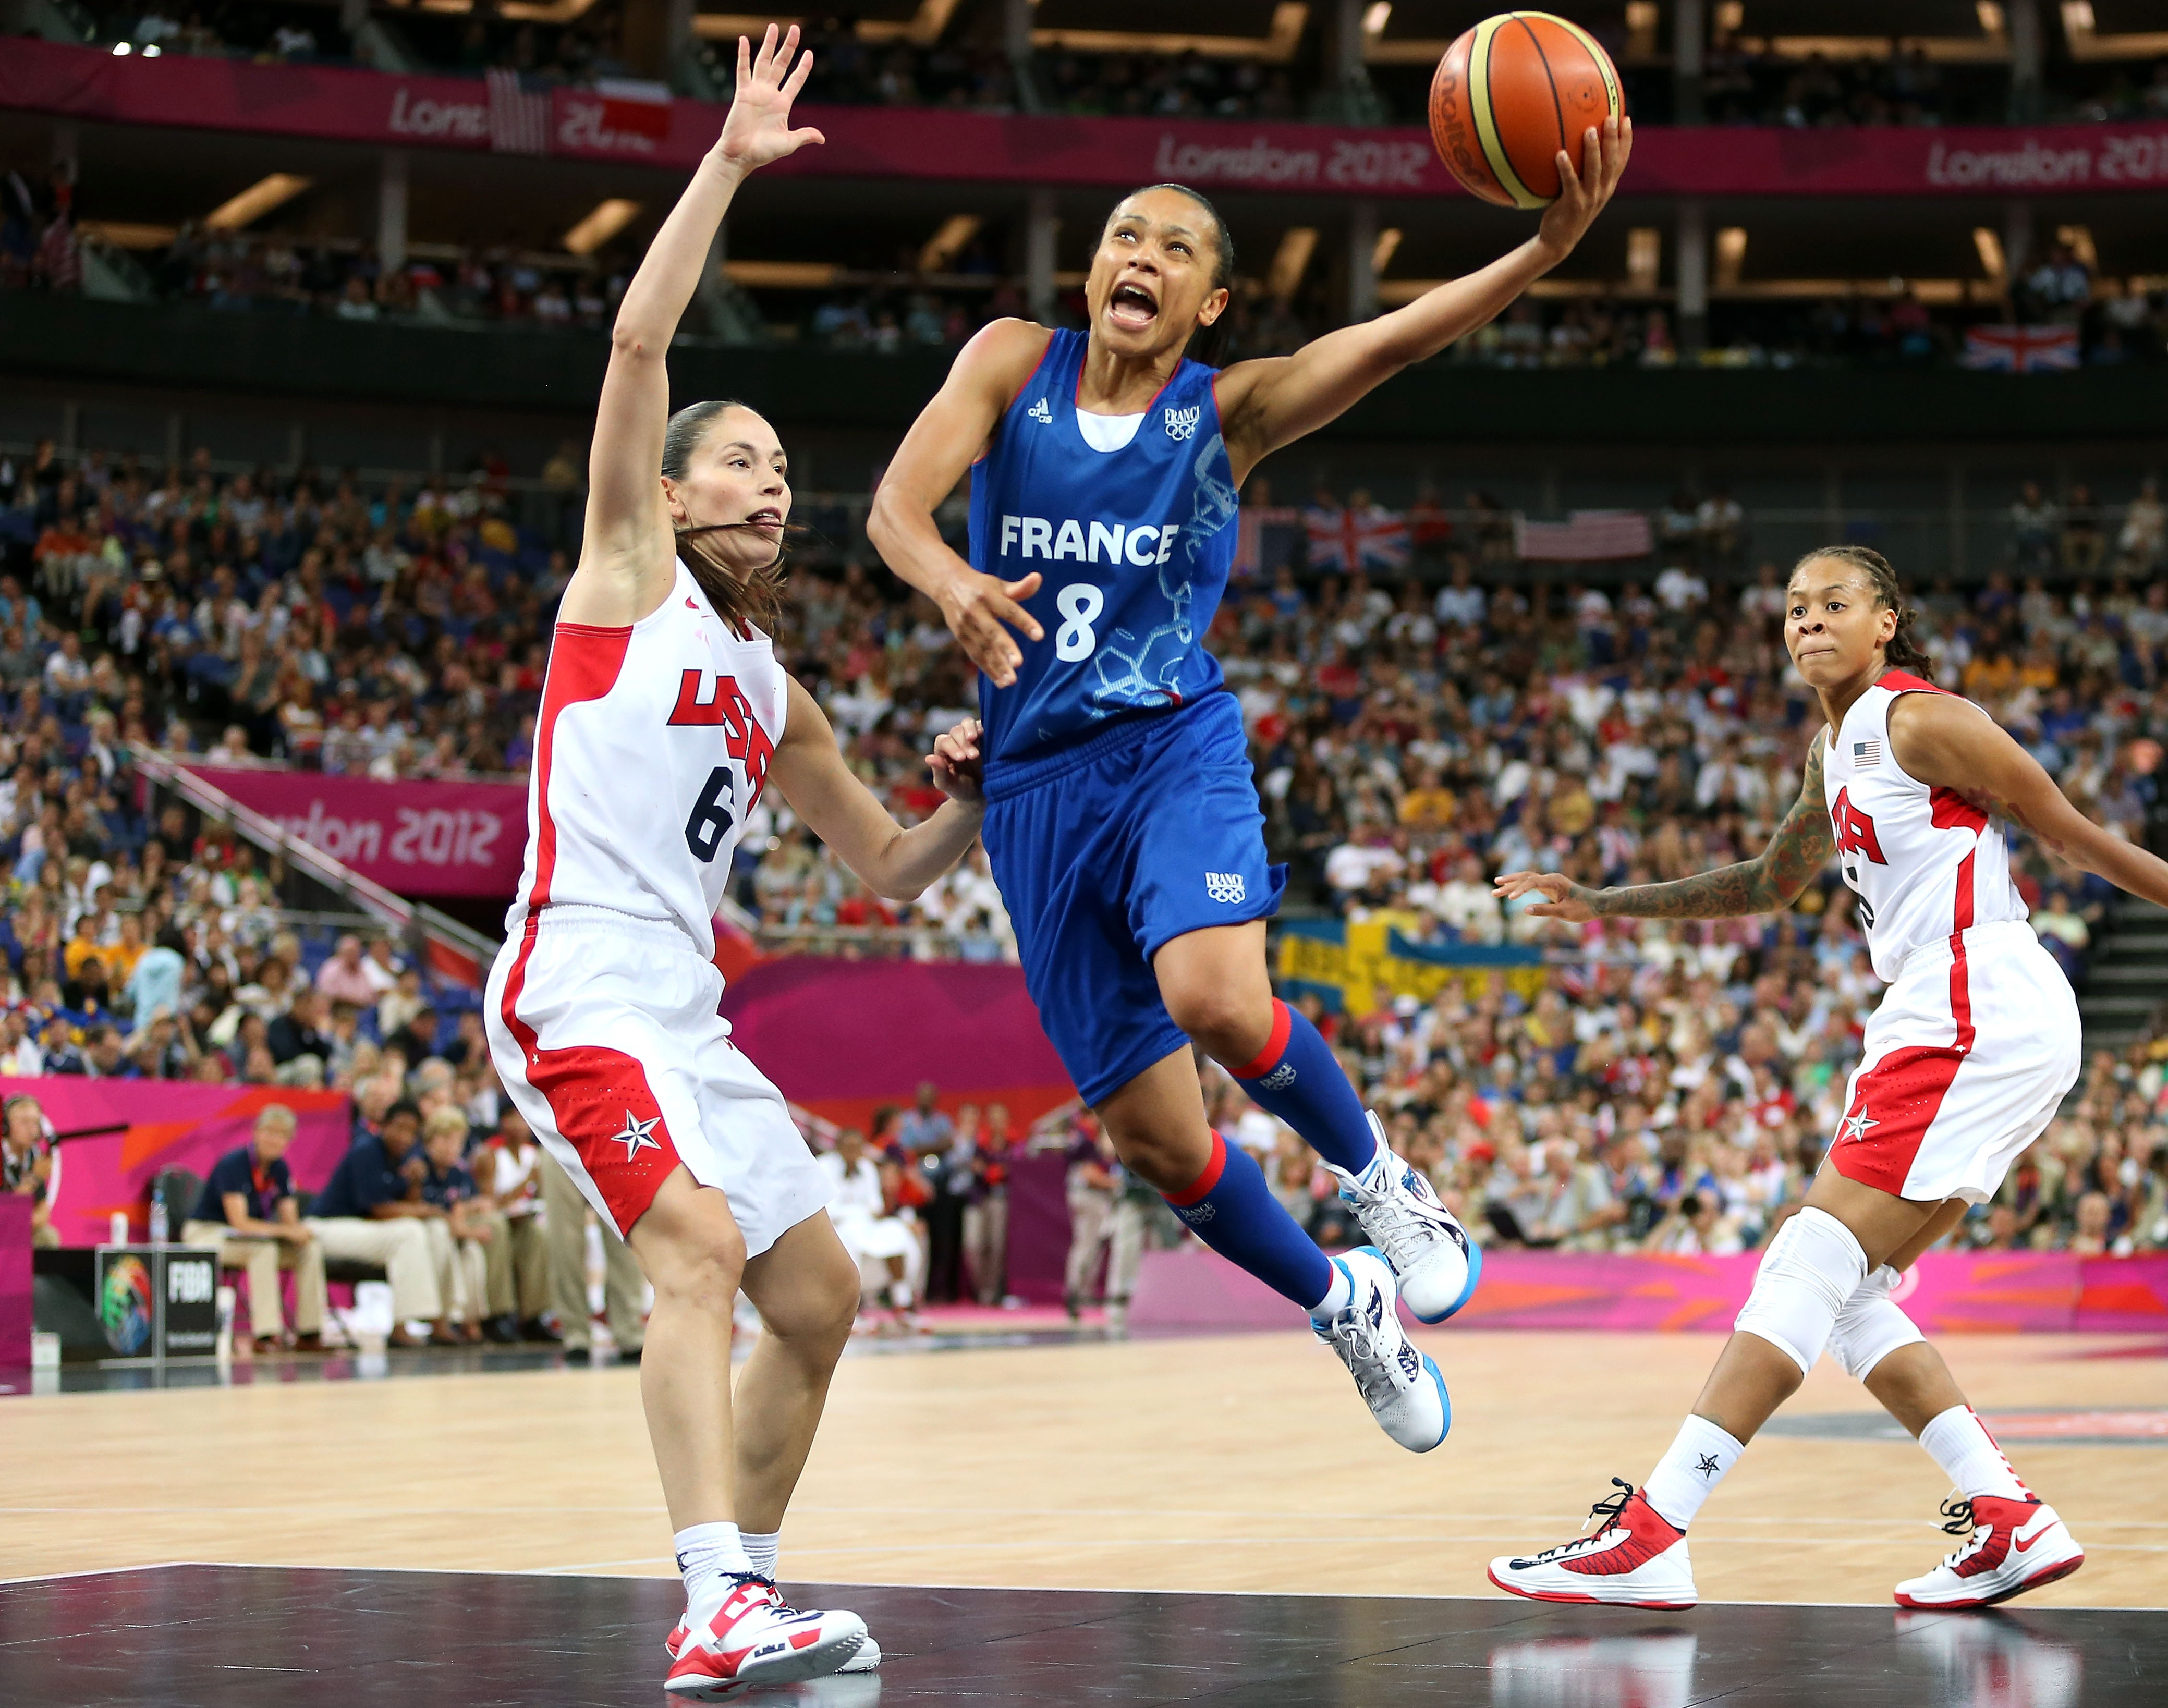 Edwige Lawson-Wade helped France win silver at the 2012 Olympics.